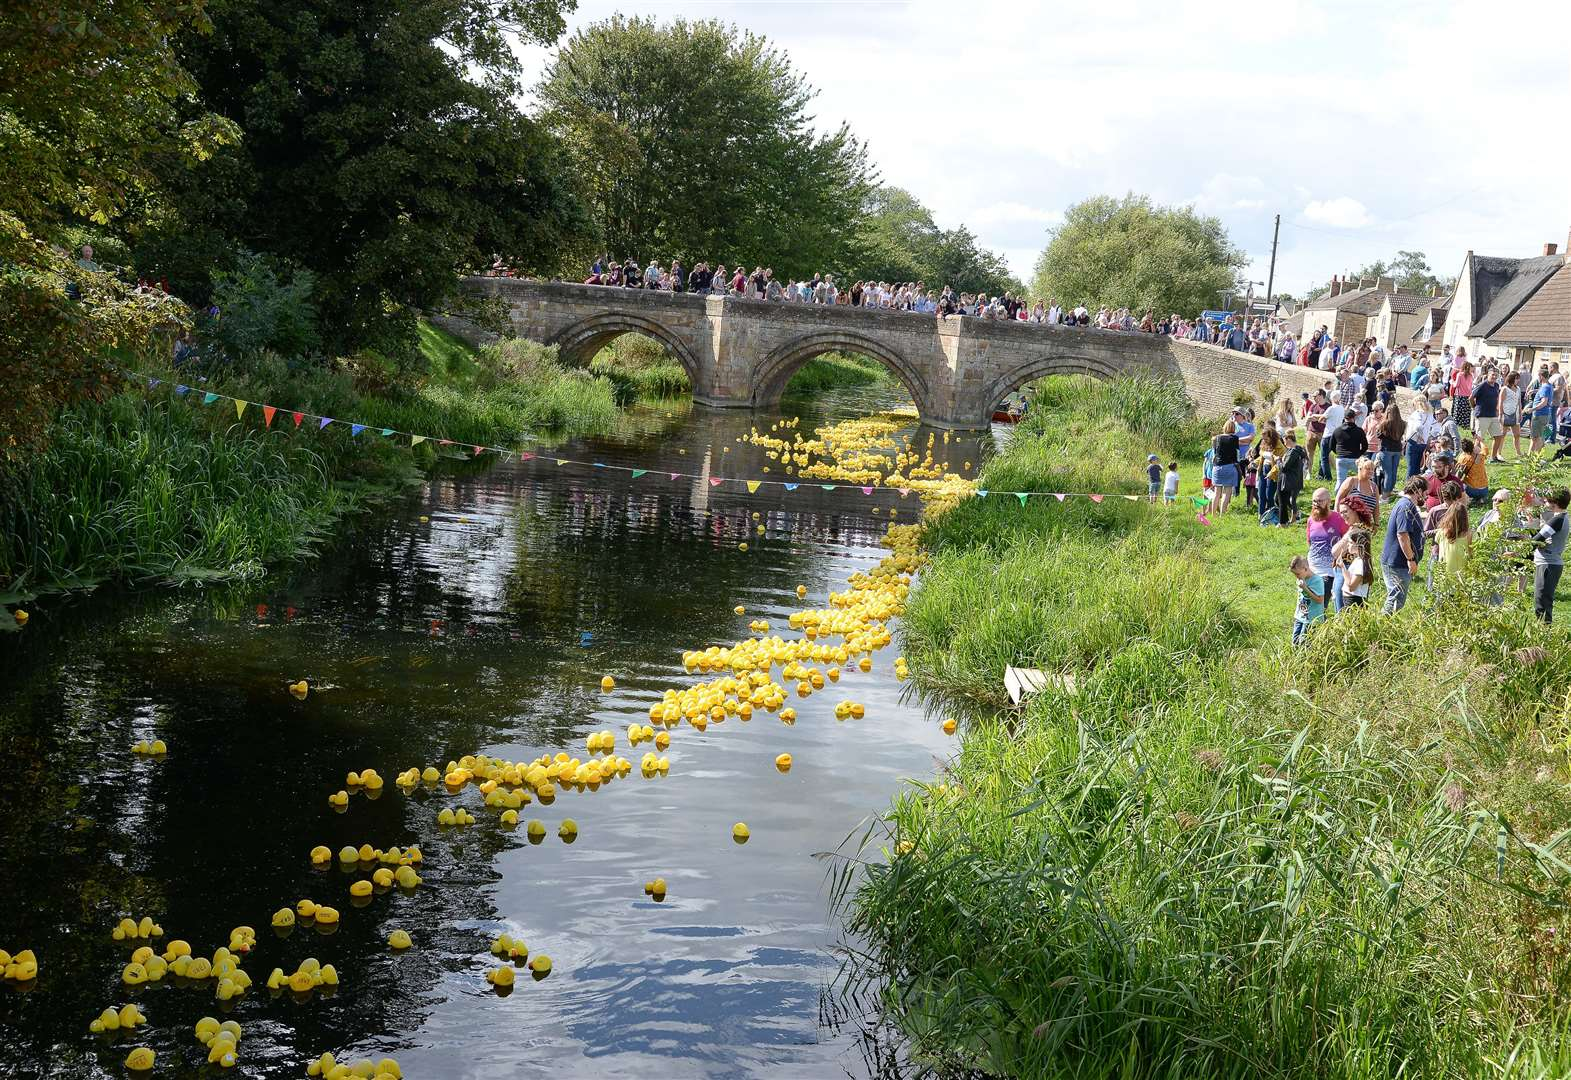 What big surprise was there for spectators at Deepings Duck Race?